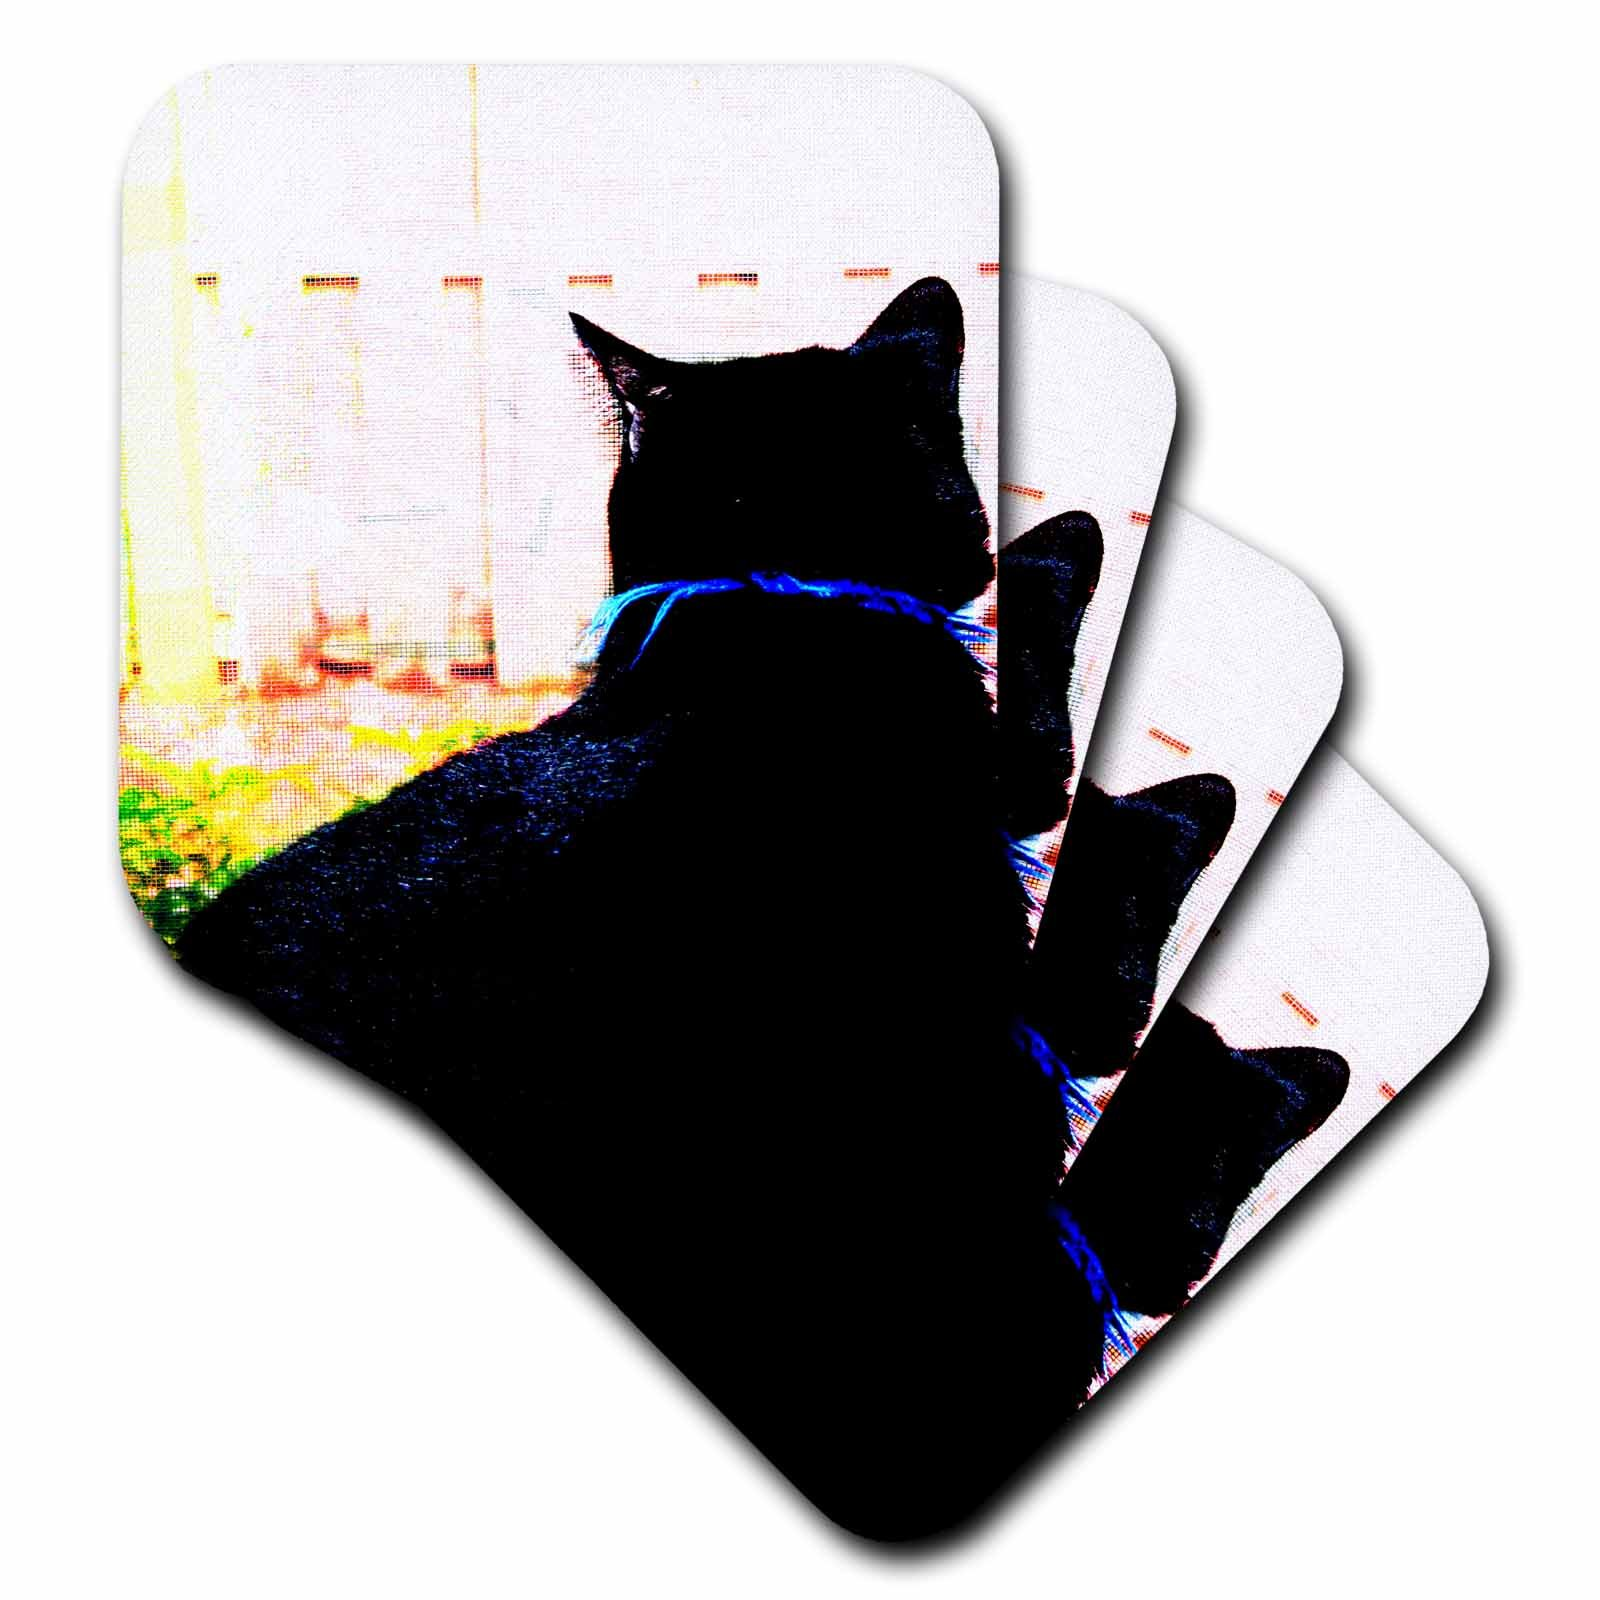 3dRose cst_155949_3 Black Cat From Behind Animal Looking Out Window Ceramic Tile Coasters, Set of 4